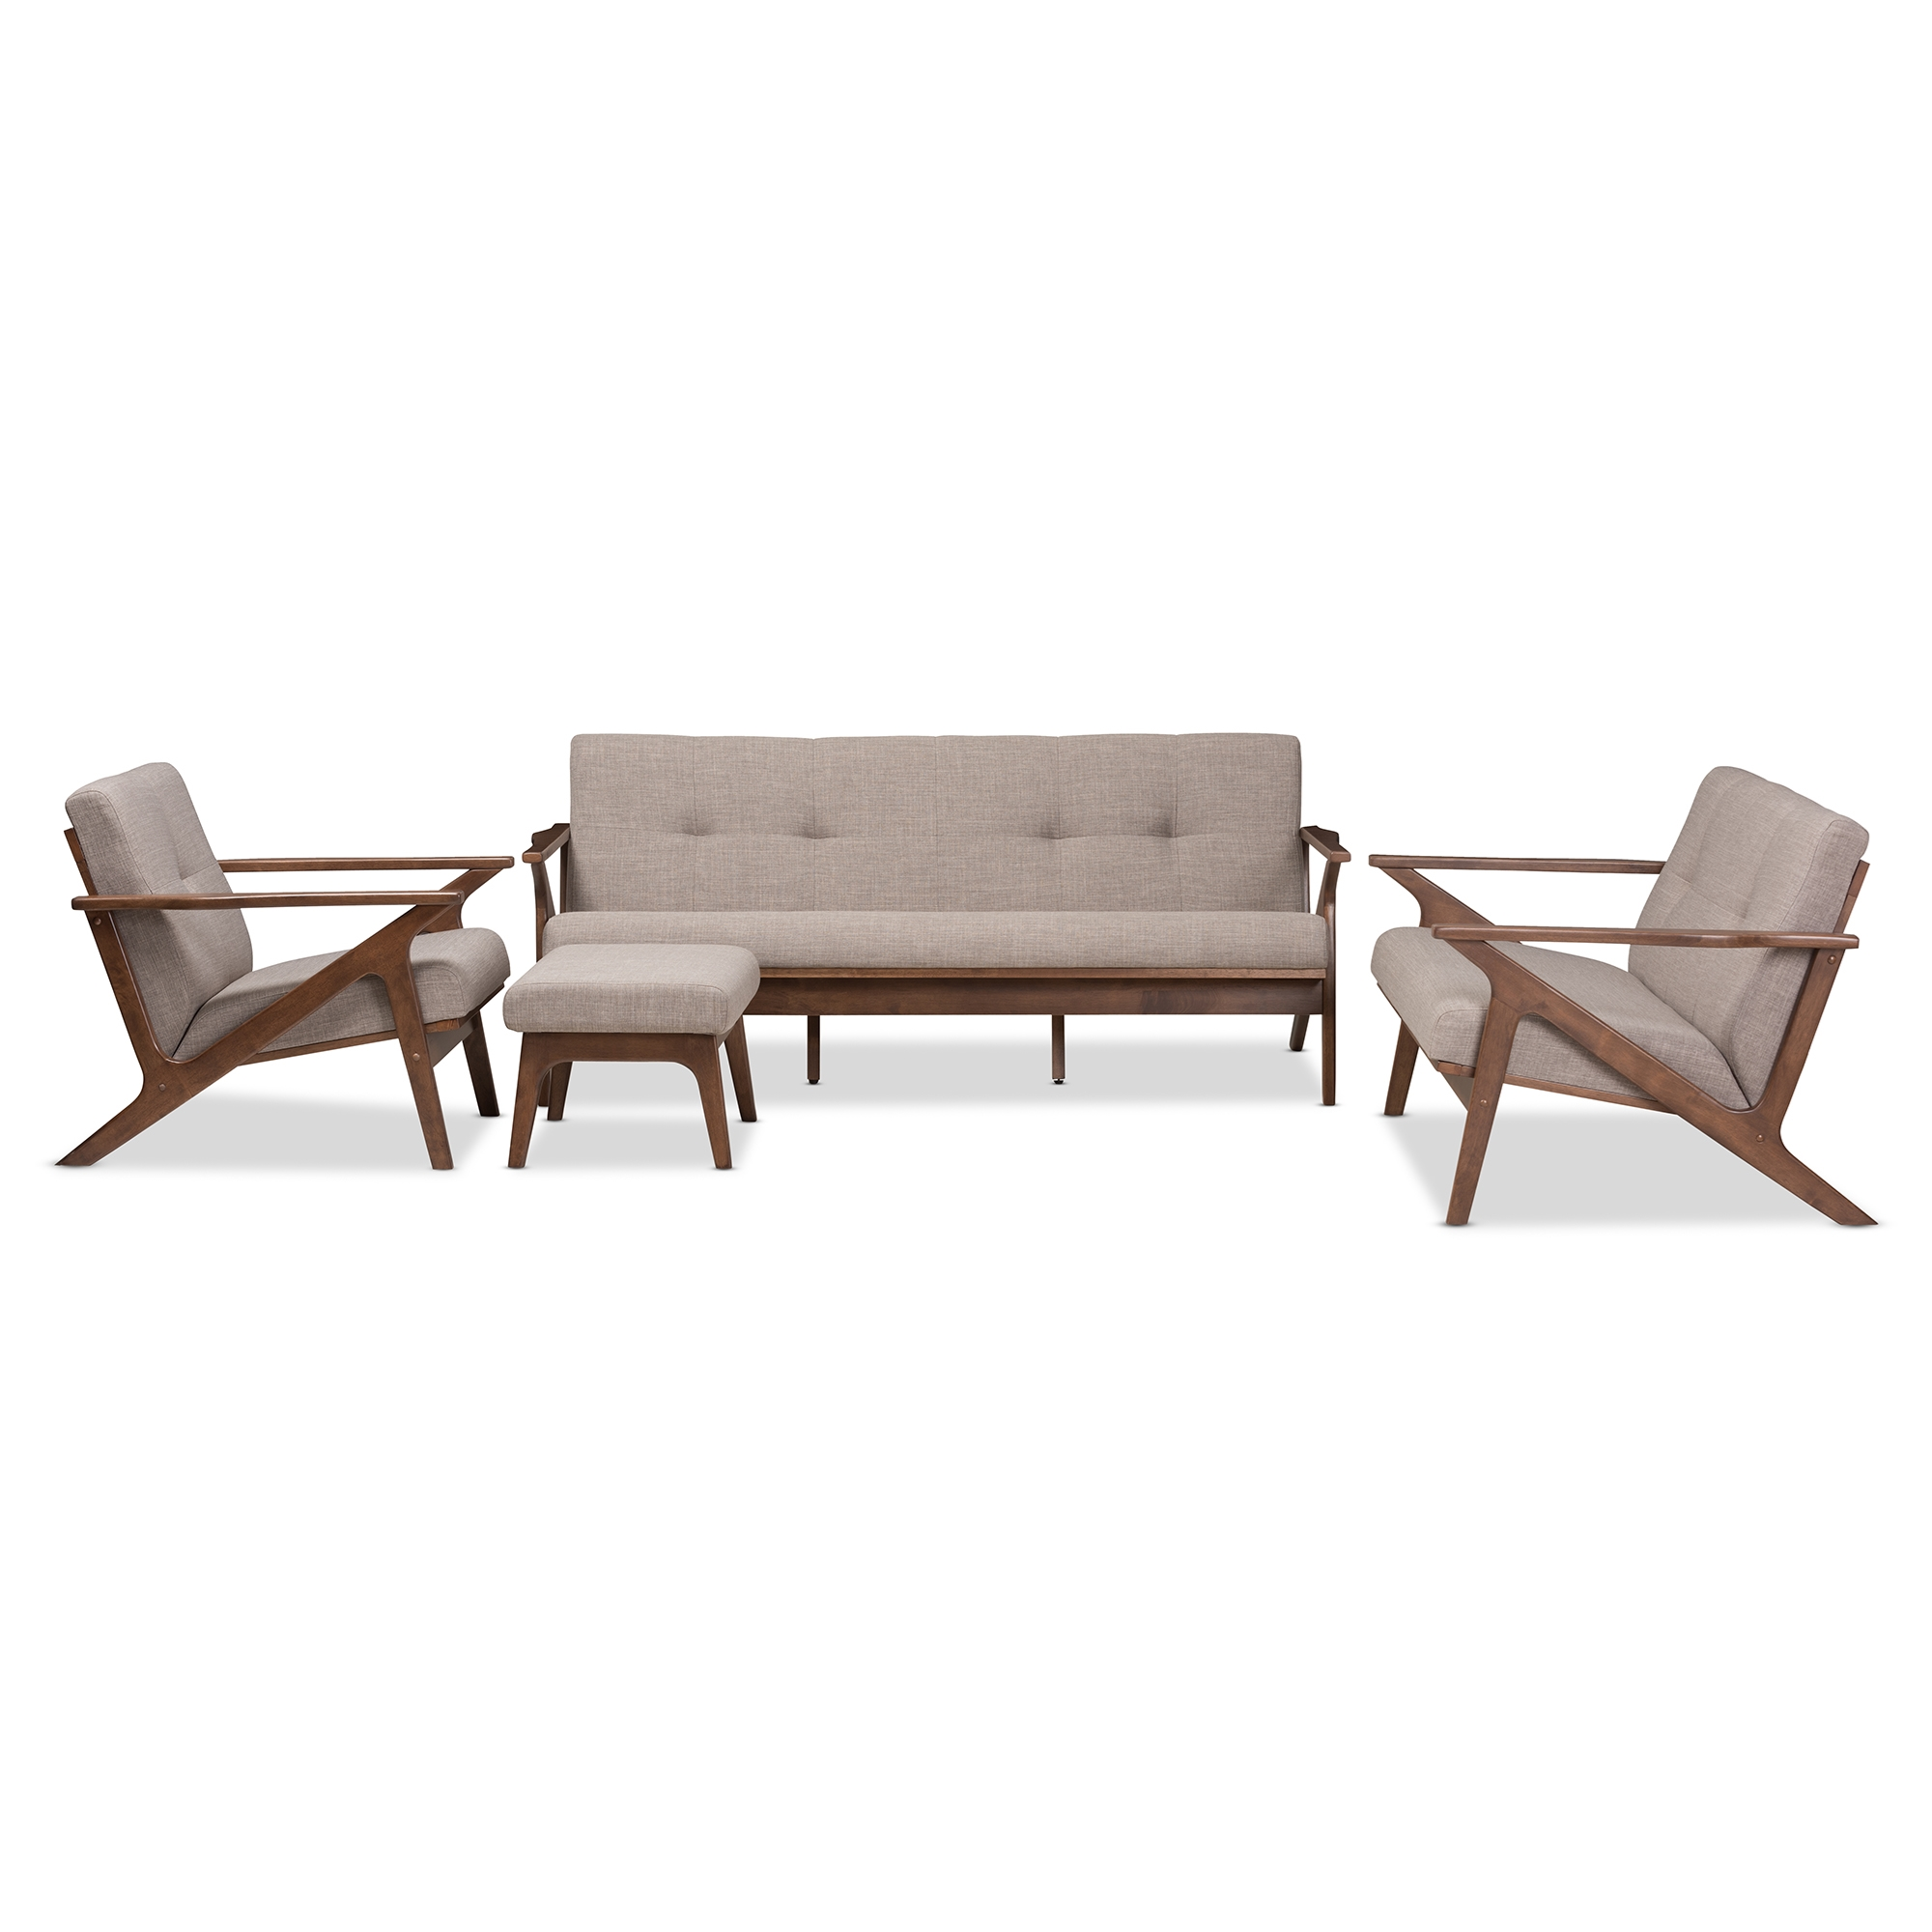 Baxton Studio Bianca Mid Century Modern Walnut Wood Light Grey Fabric  Tufted Livingroom Sofa Set